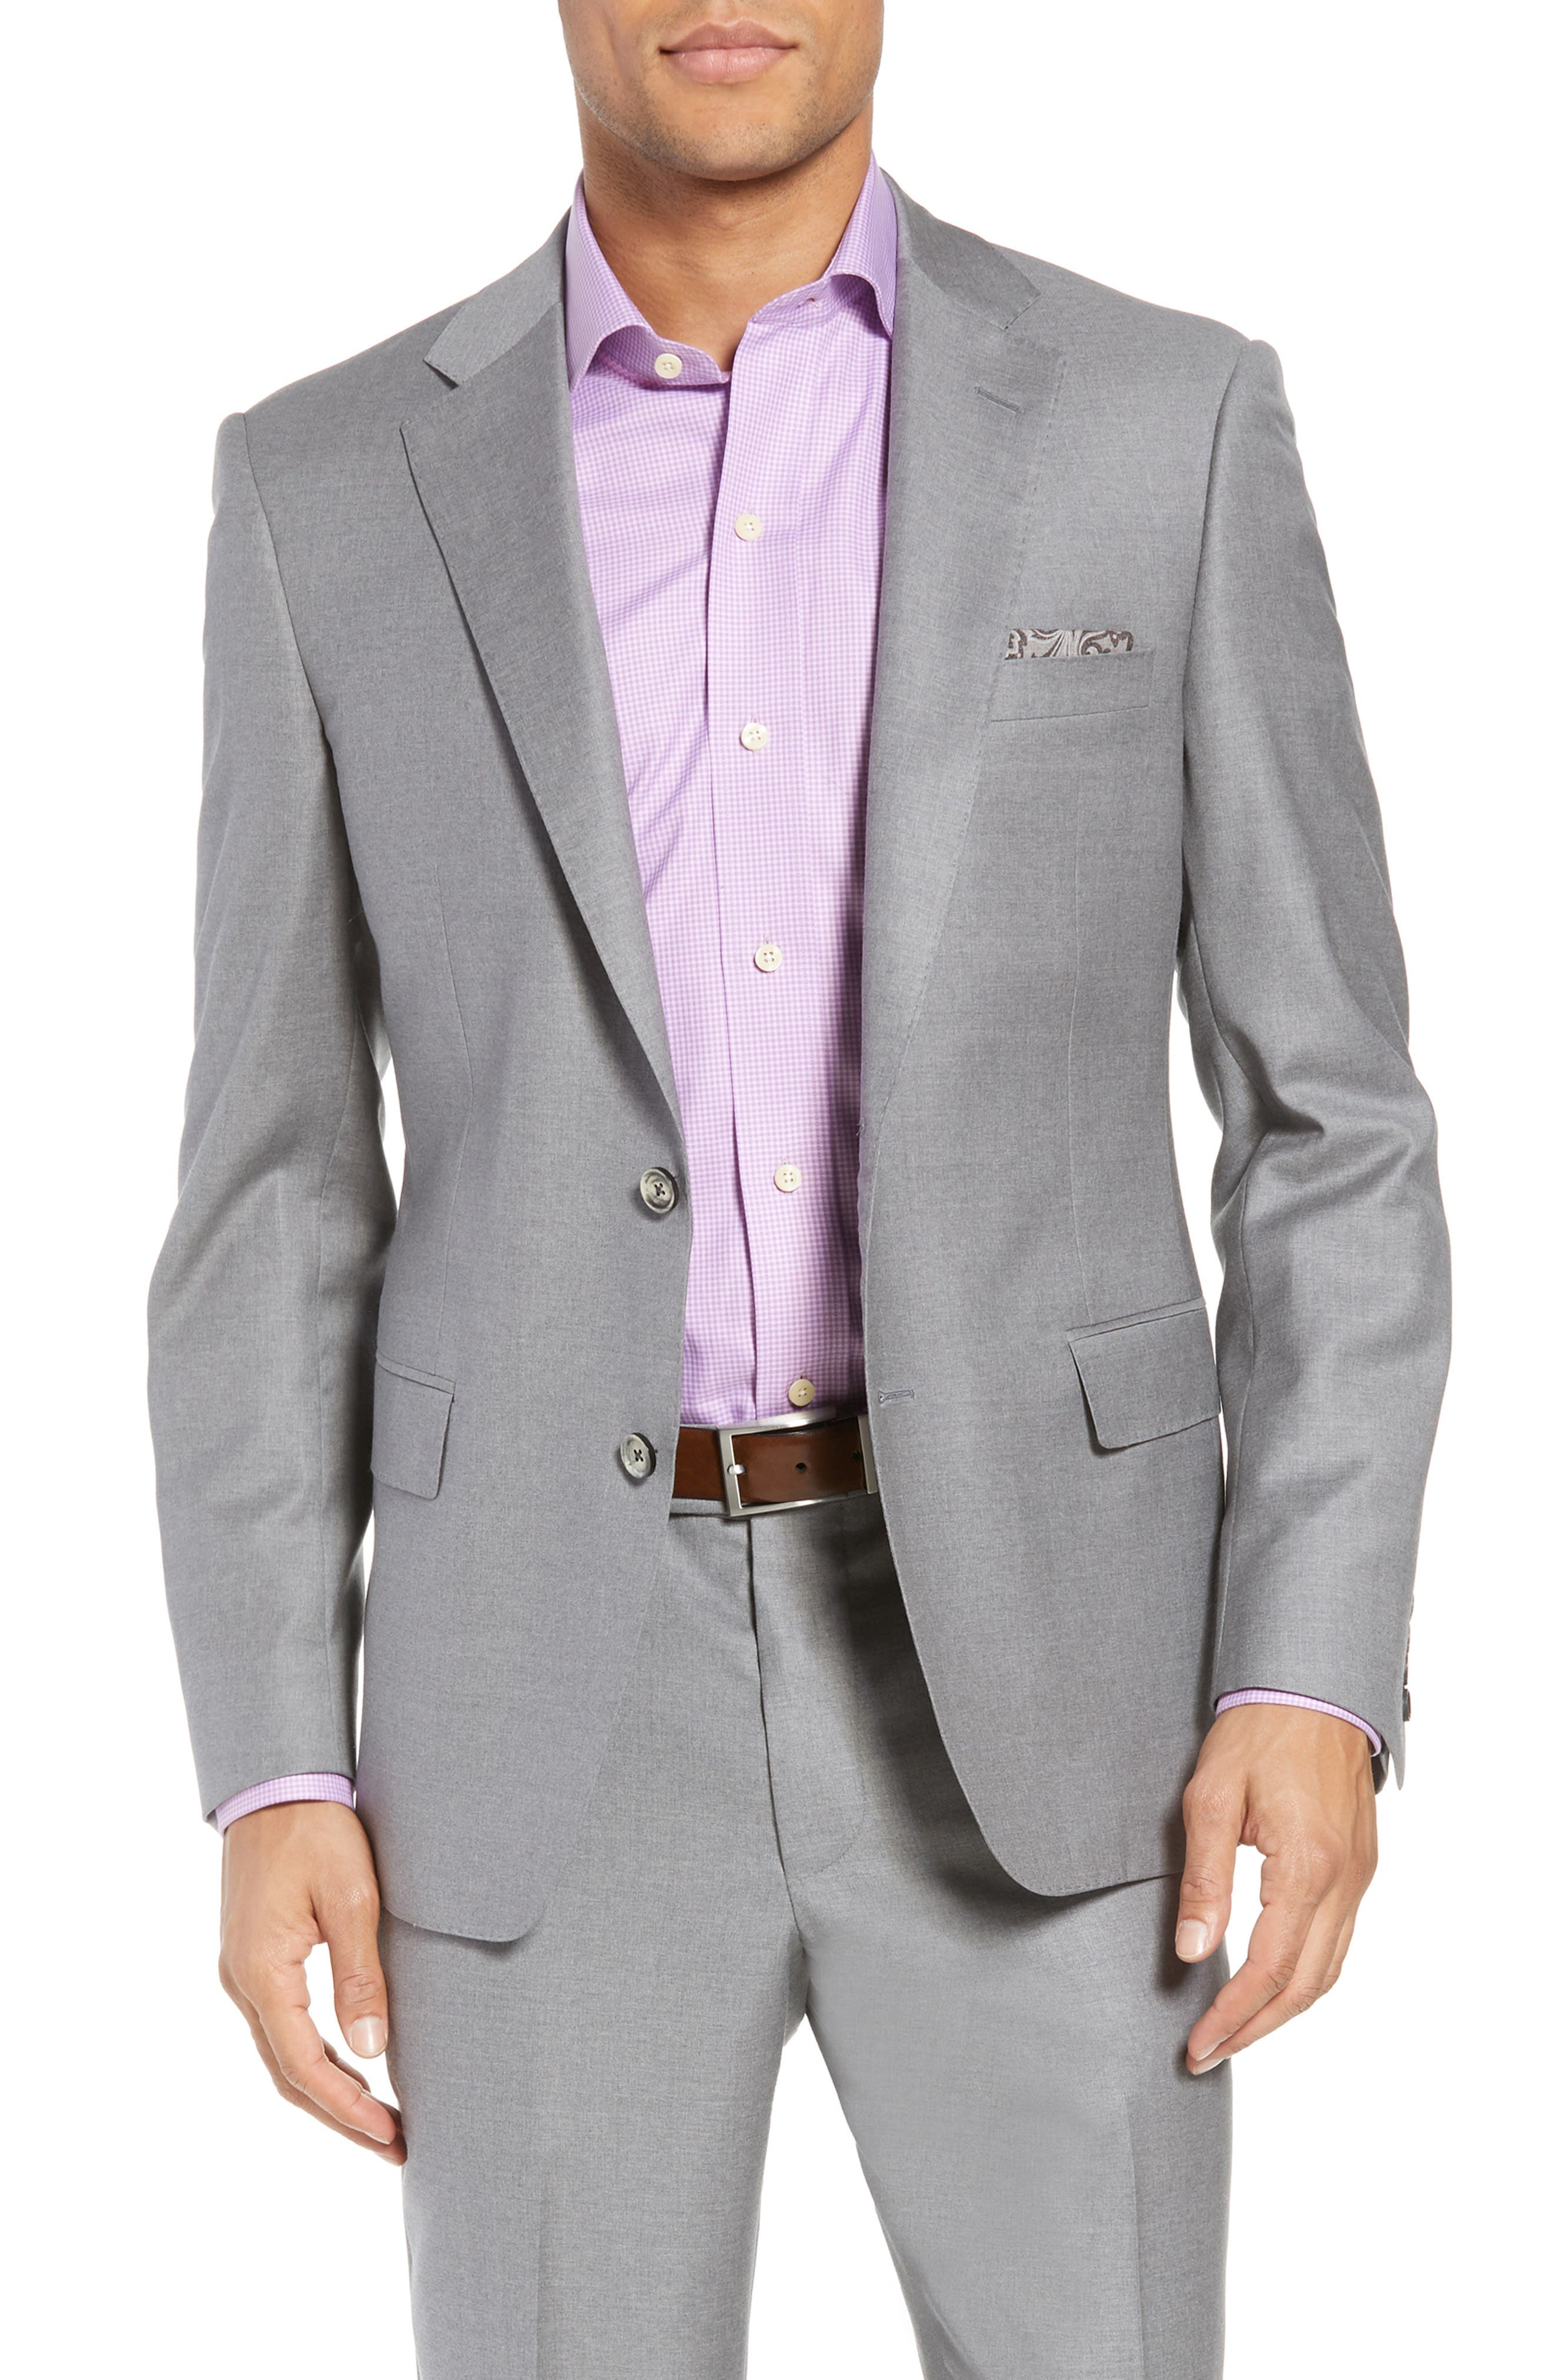 Bennet Classic Fit Solid Wool Suit,                             Alternate thumbnail 5, color,                             020